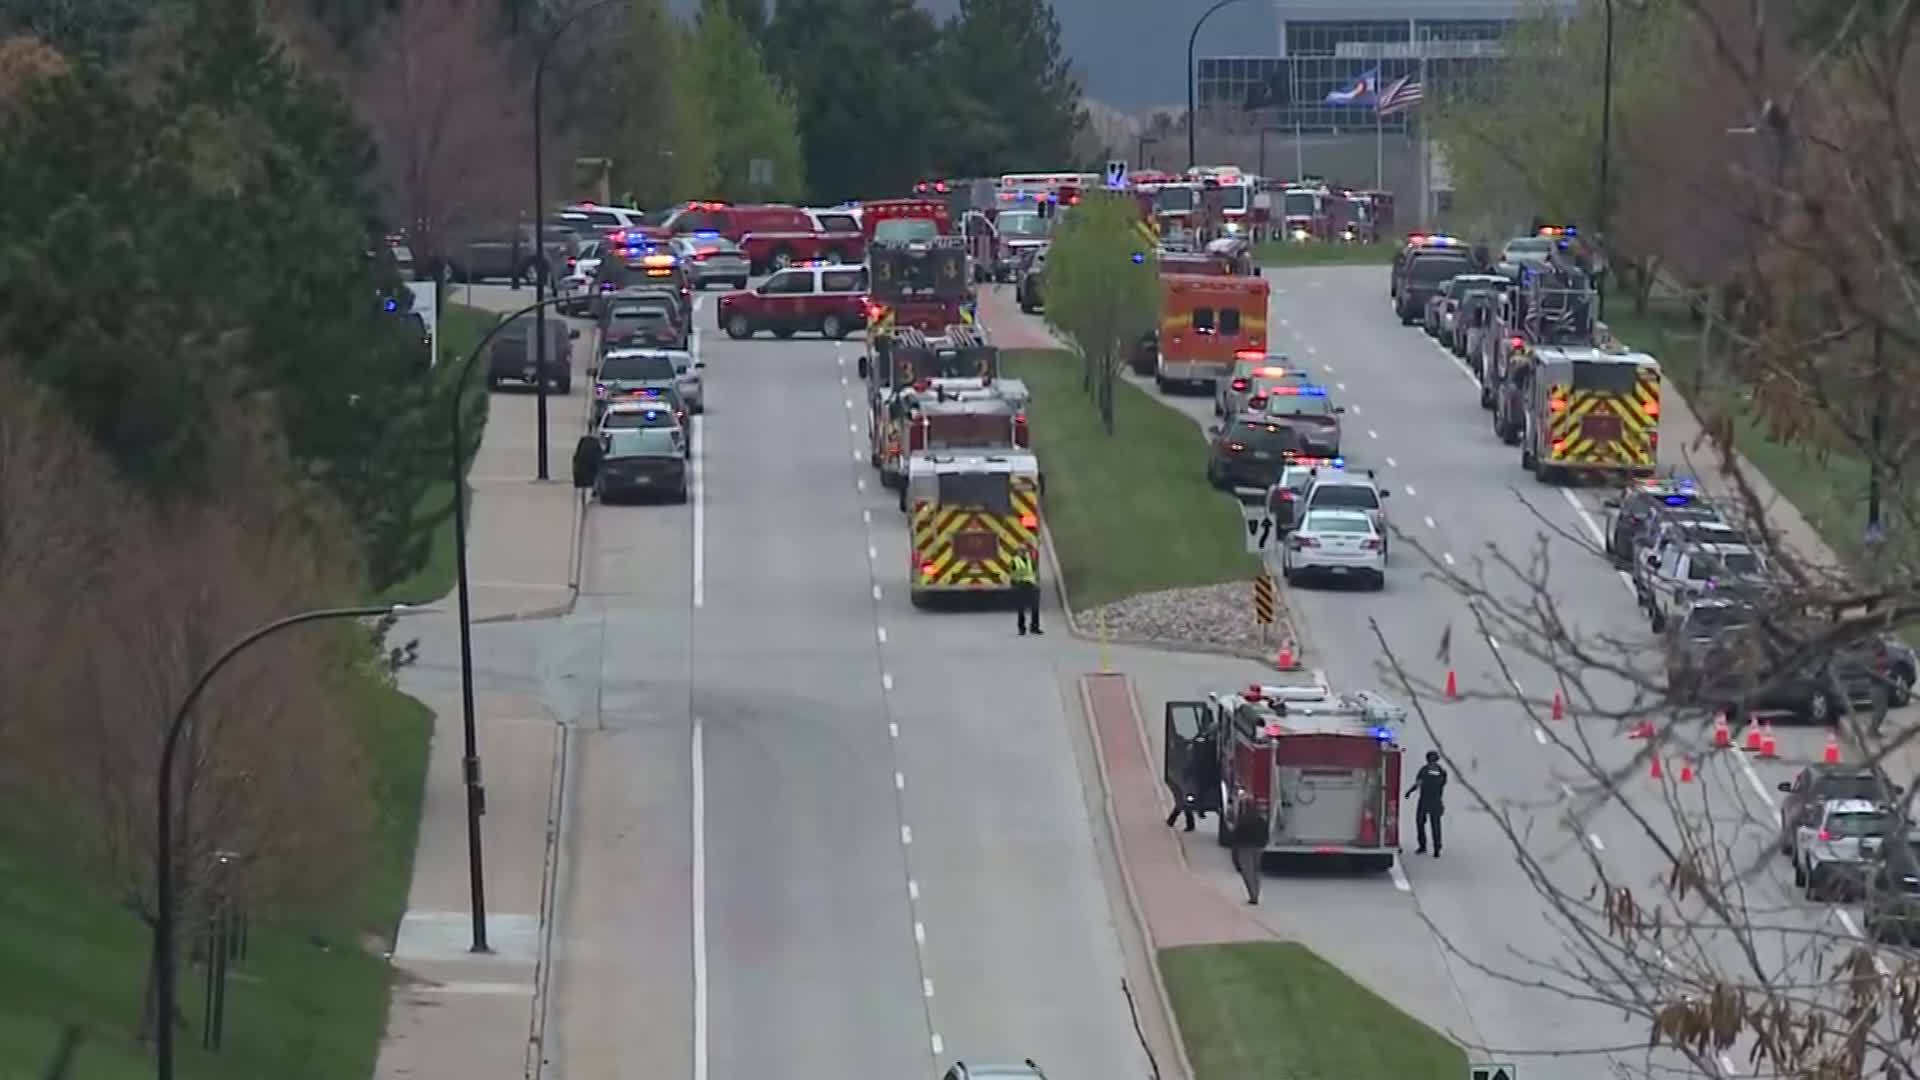 Multiple injuries in Colorado school shooting